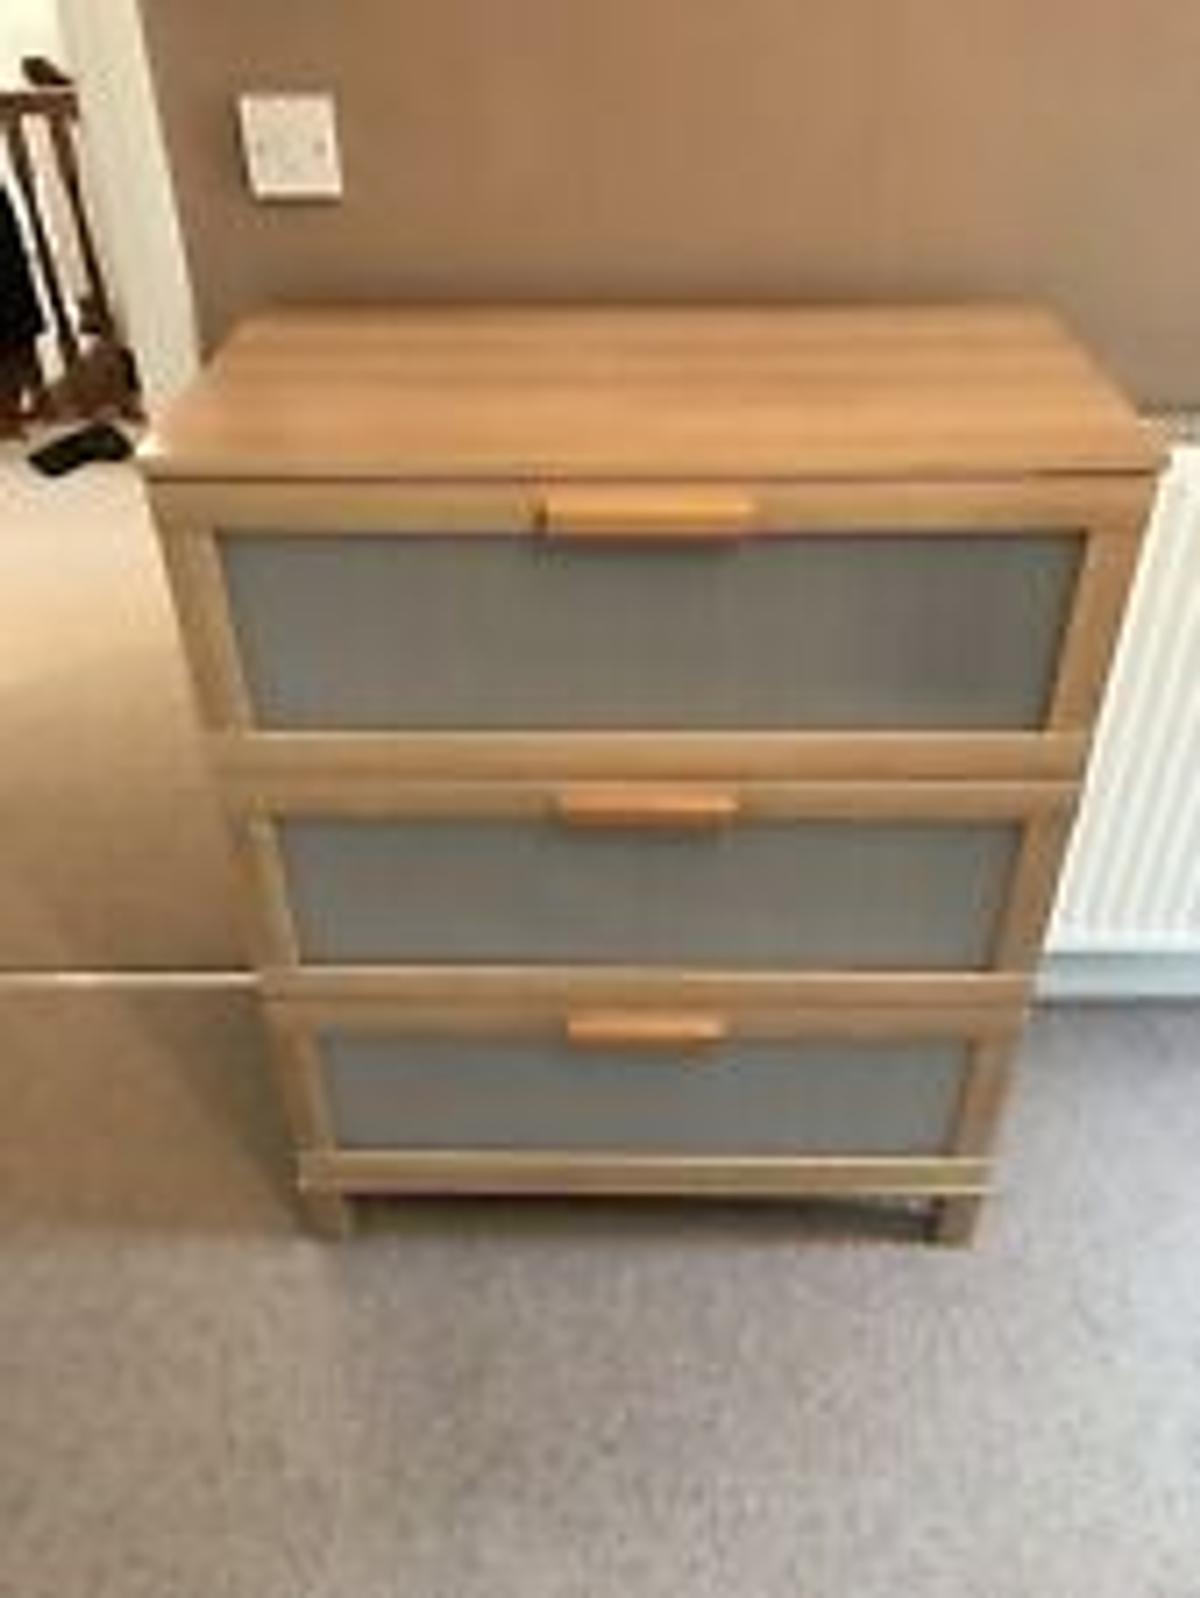 Ikea Brimnes Chest Of 3 Drawers In Se15